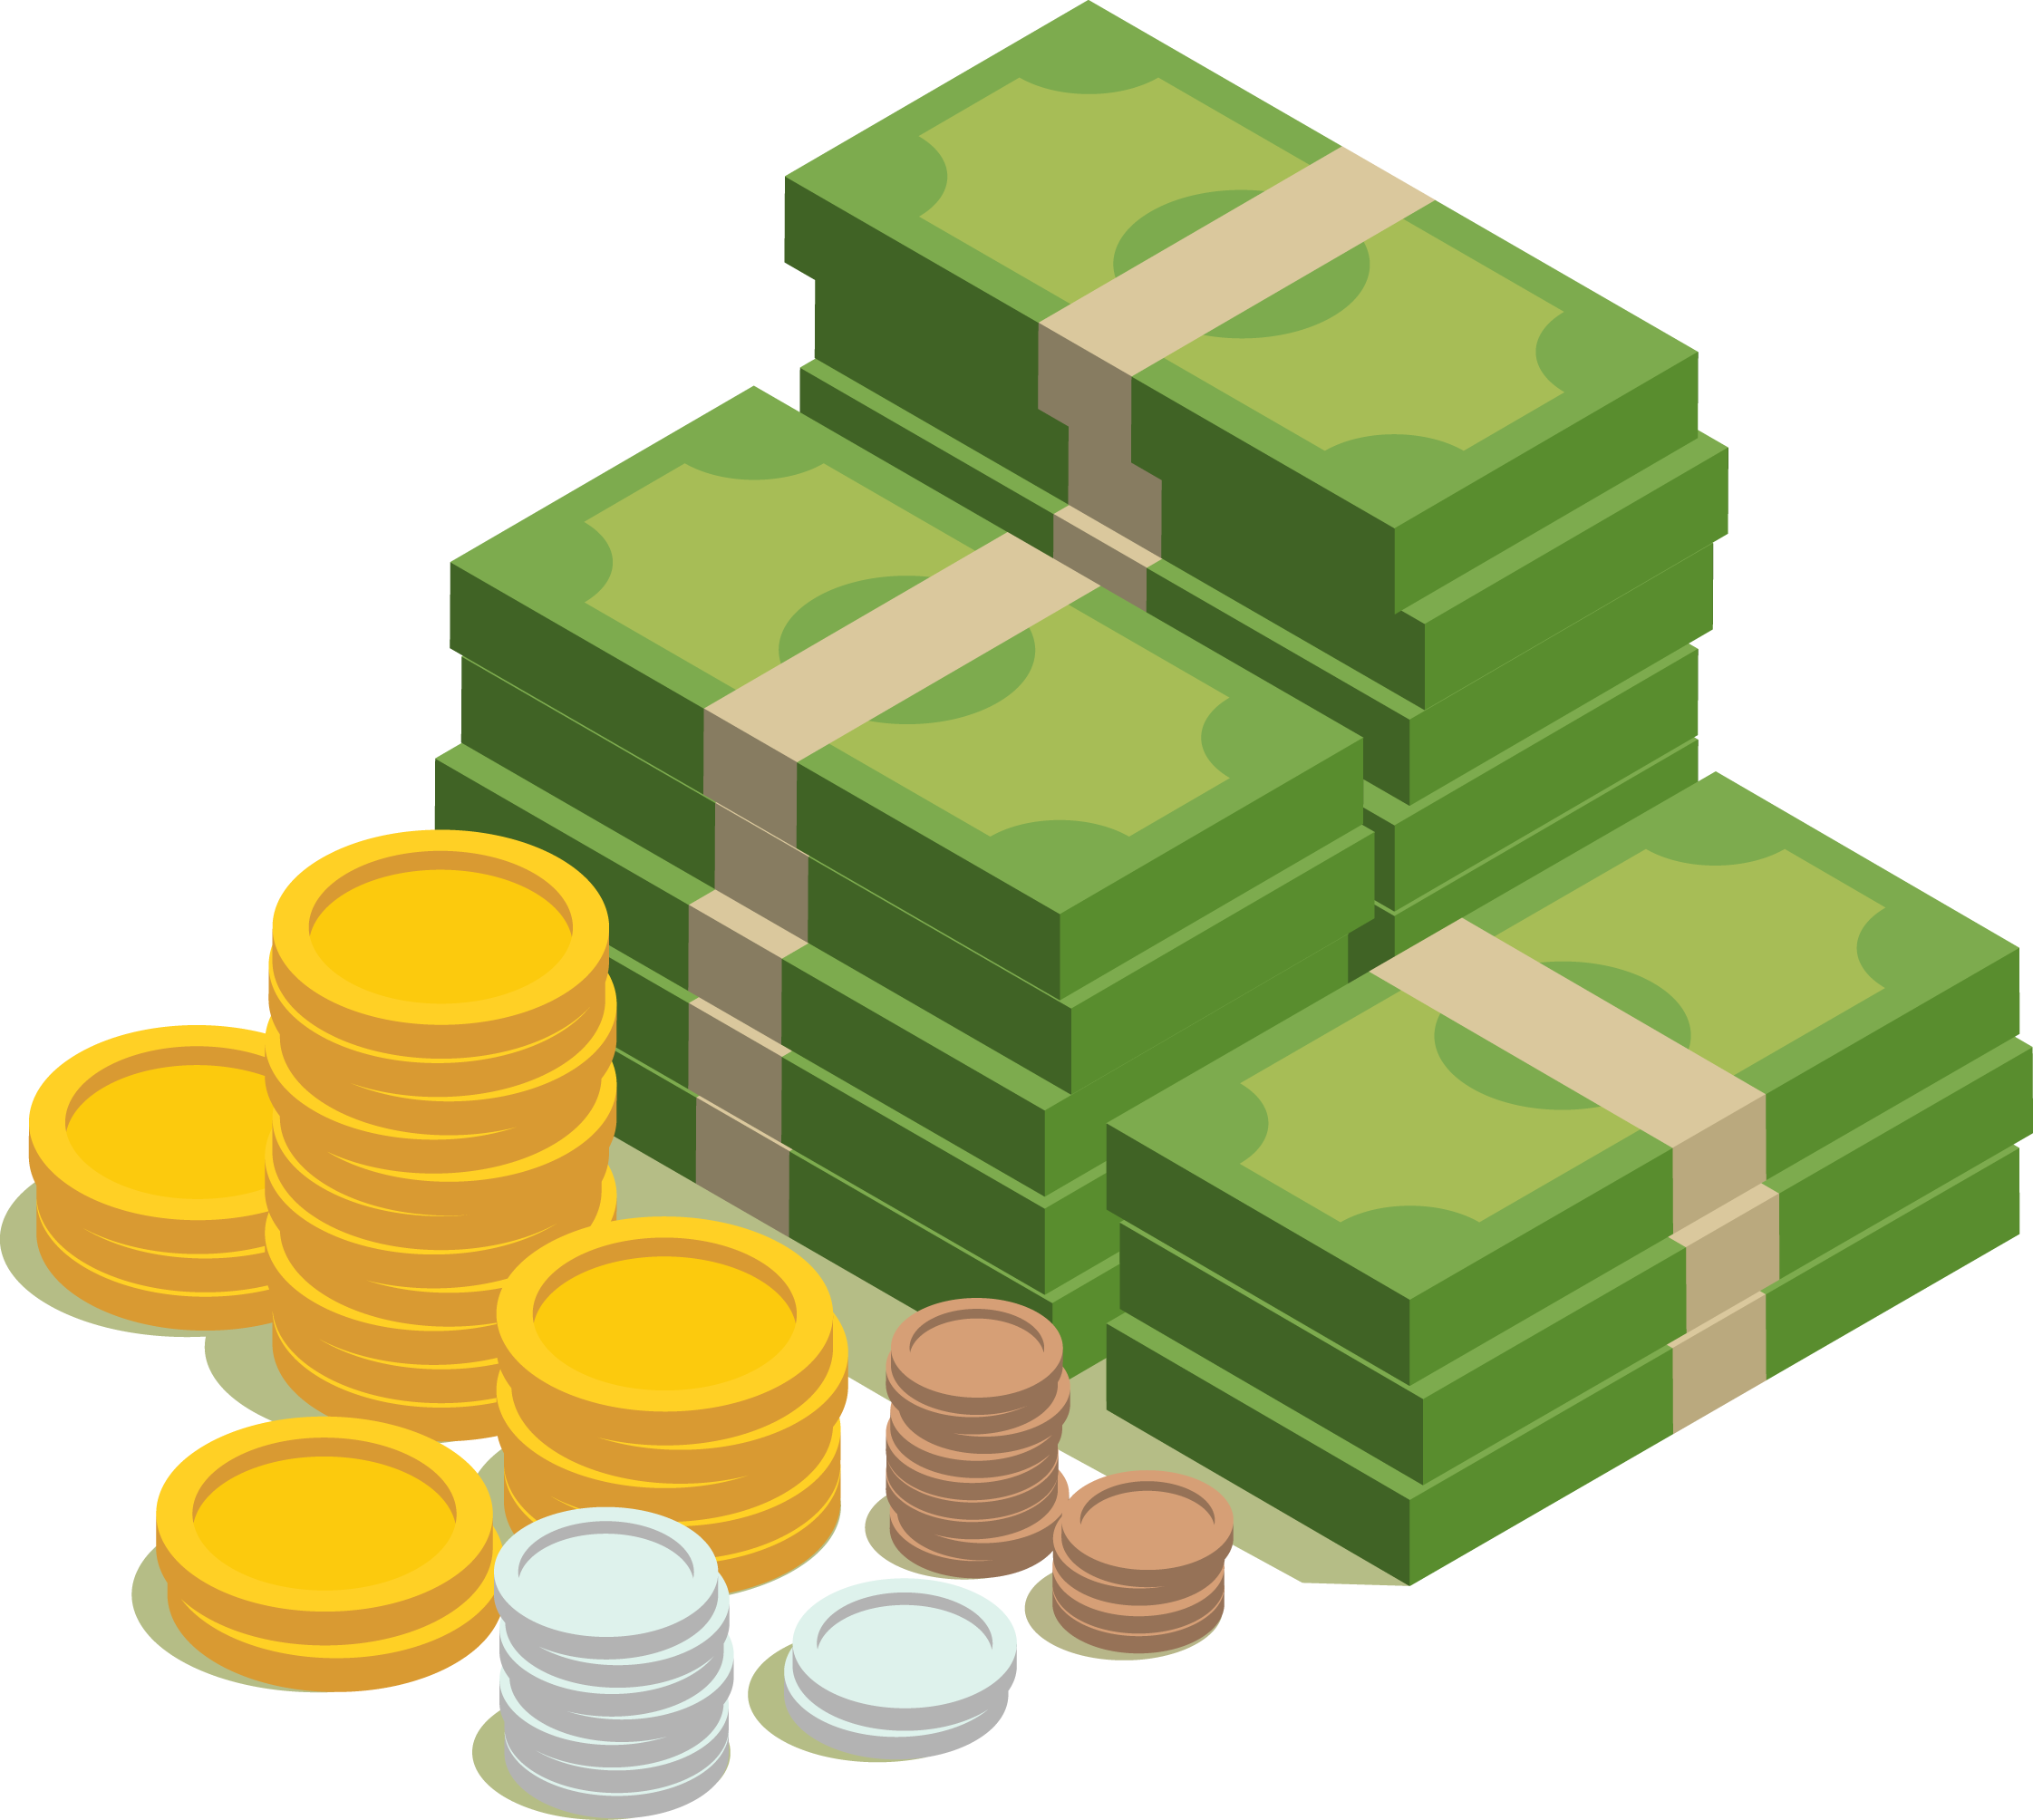 Finance clipart financial issue. Business and translation services